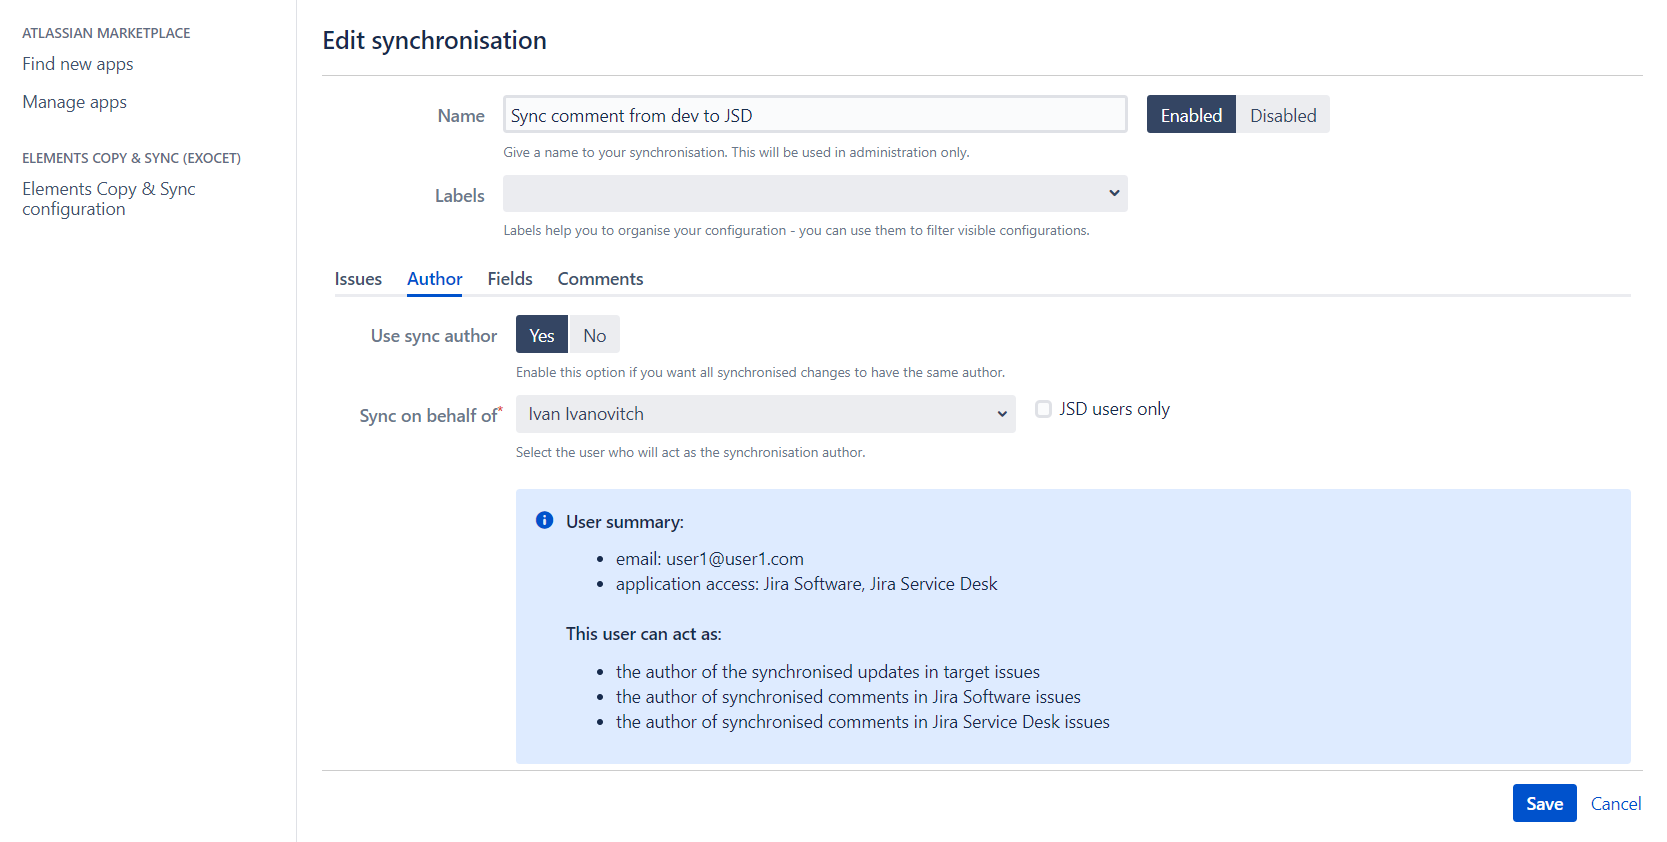 Synchronize comments from Jira to JSD